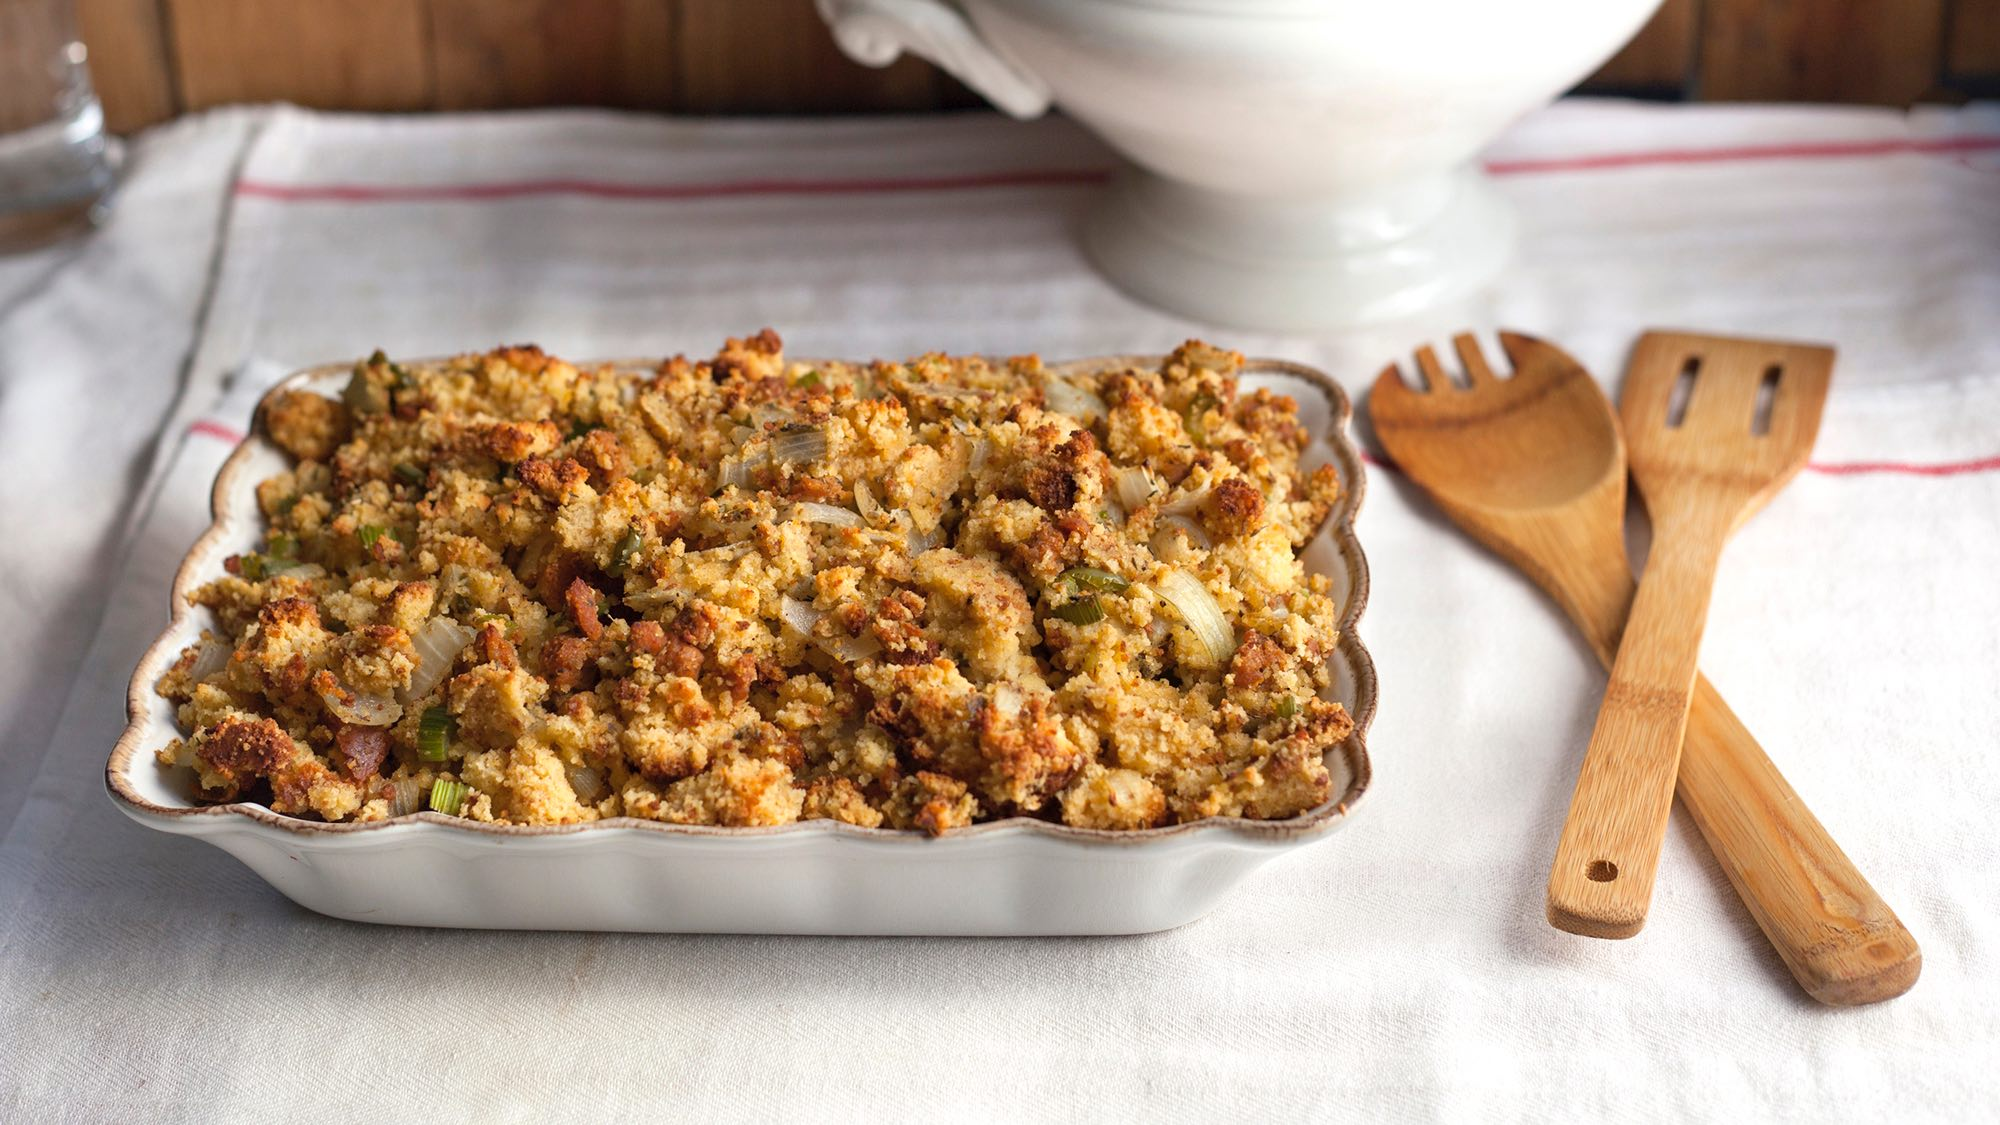 McCormick Cornbread and Sausage Stuffing